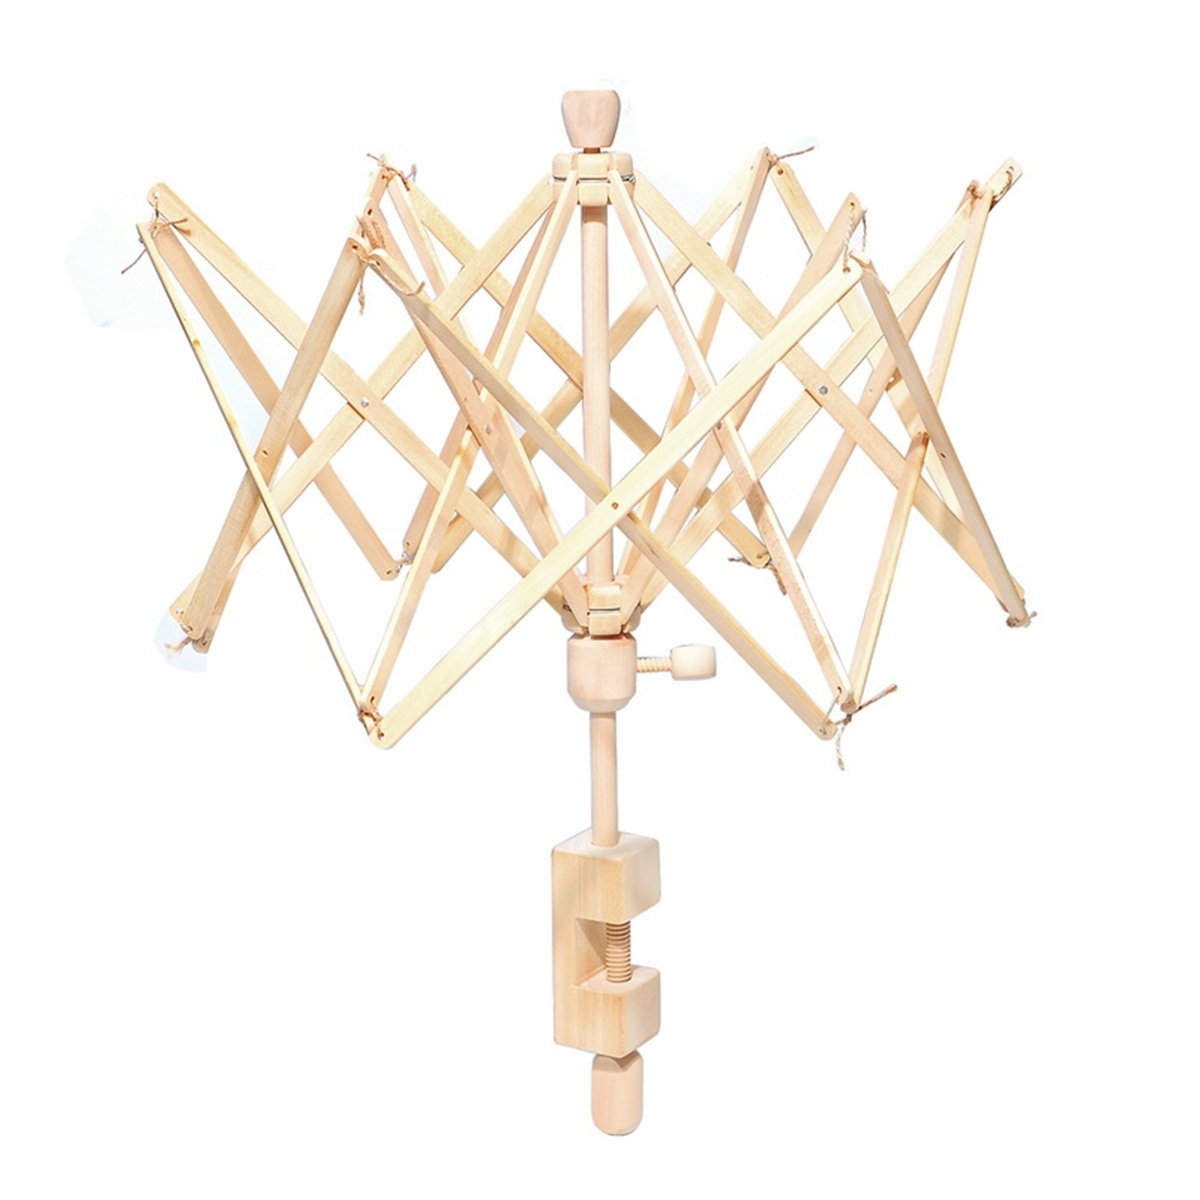 Umbrella Bobbin Winder Wooden Yarn Swift Knitting Holder for Winding Lines Strings Yeenee W0A0A1R9S